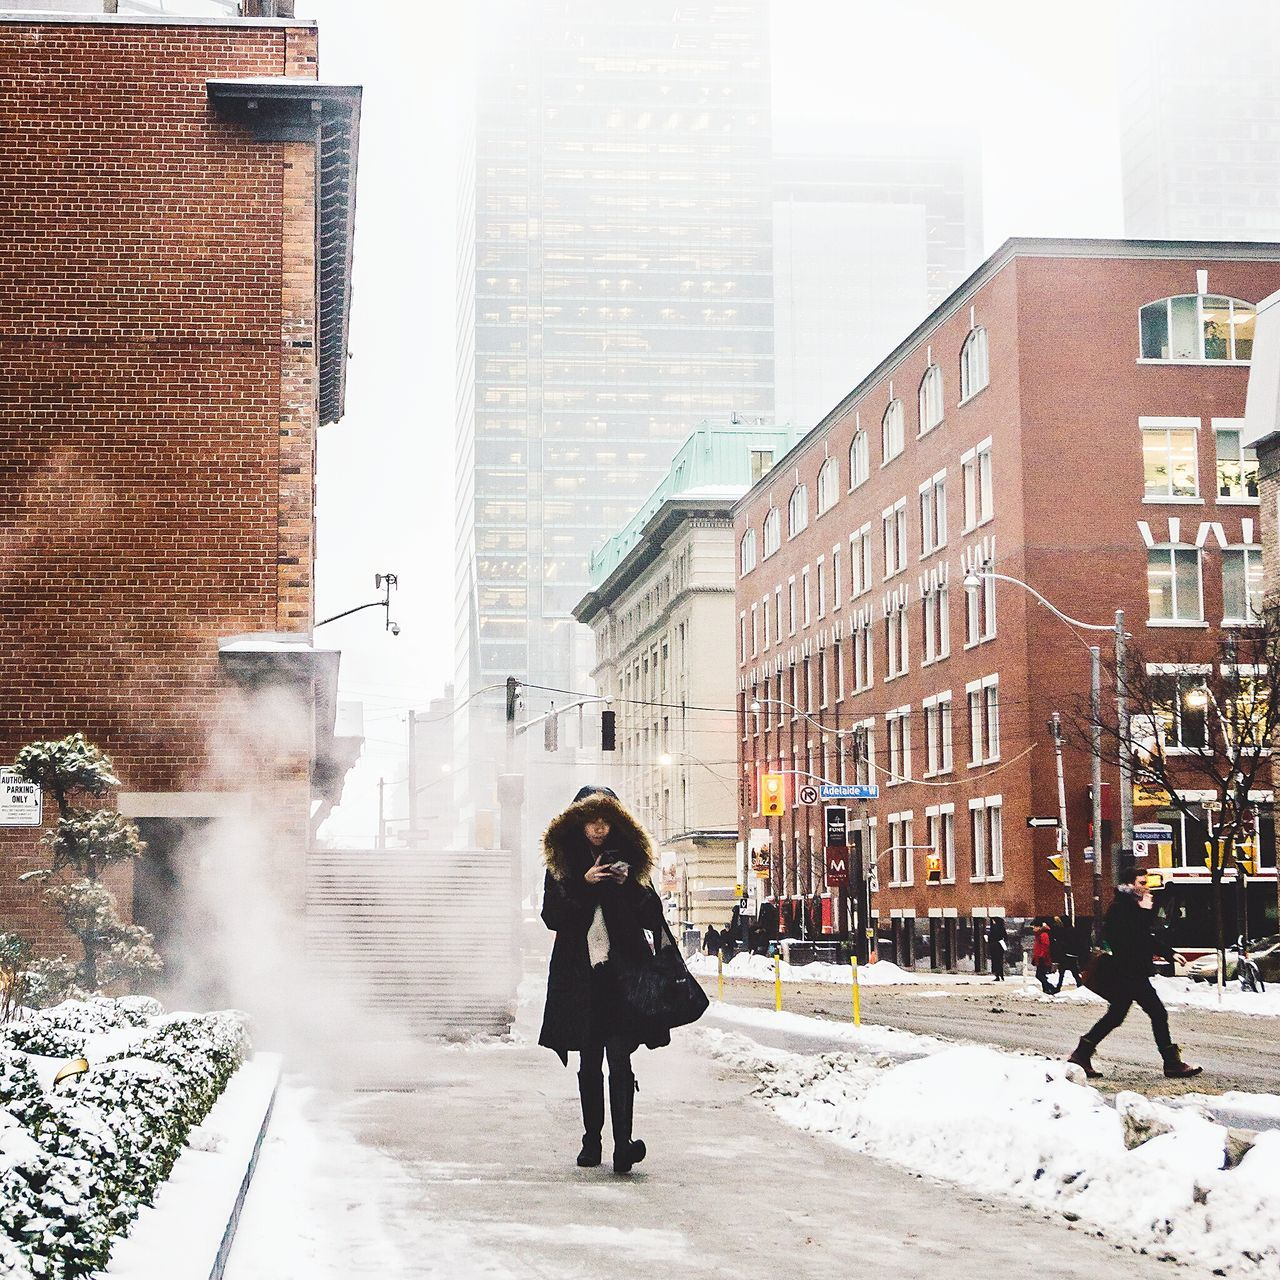 Toronto Cityscapes Open Edit EyeEm Best Shots Urbanphotography Street Photography Streetphotography Urban The Street Photographer - 2015 EyeEm Awards Urban Lifestyle It's Cold Outside